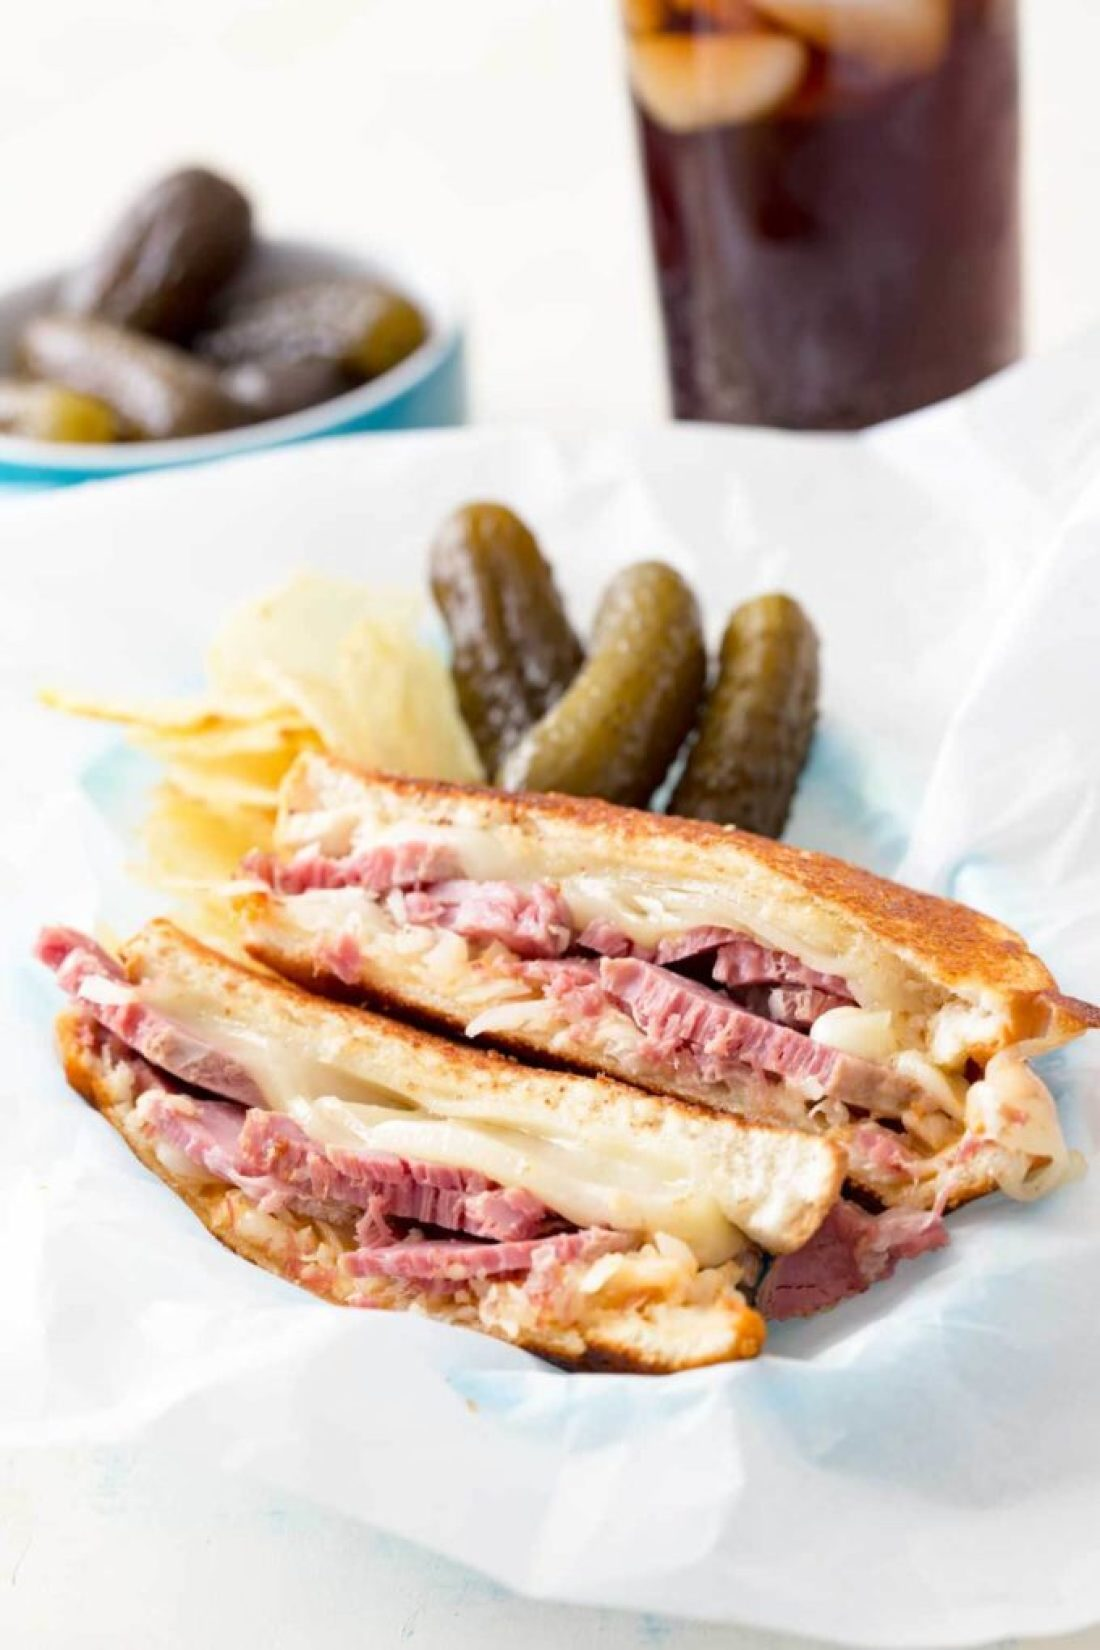 Reuben sandwich recipe, corned beef sandwich with a twist